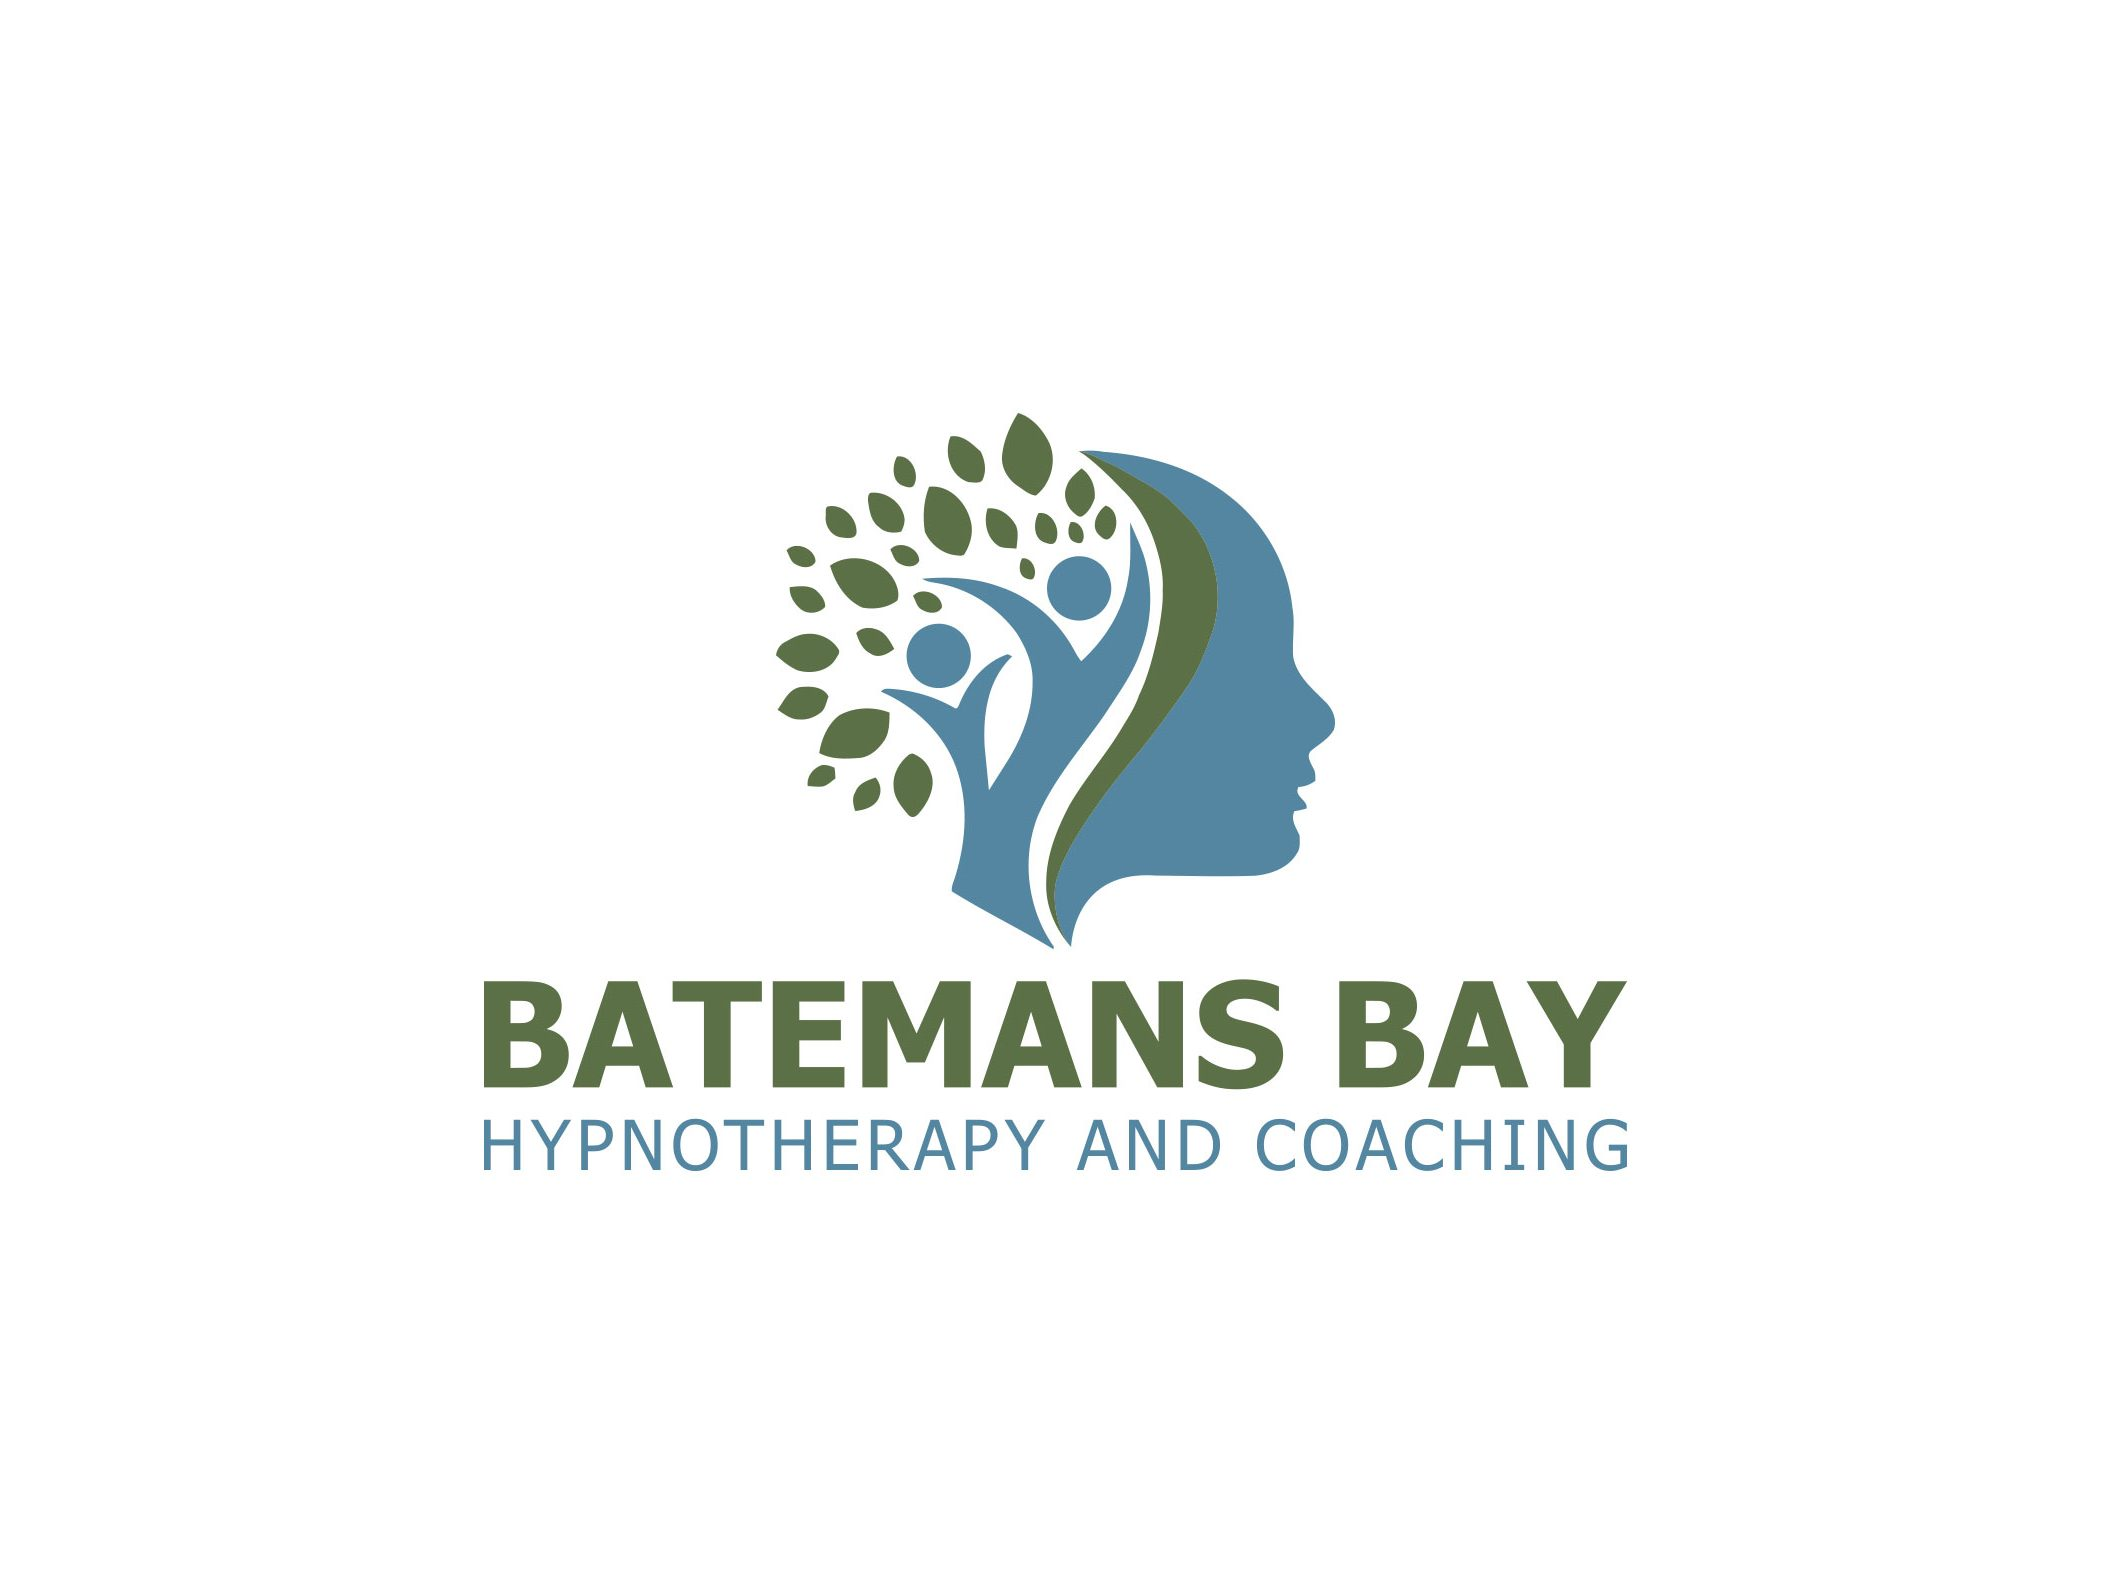 Batemans Bay Hypnotherapy and Coahing